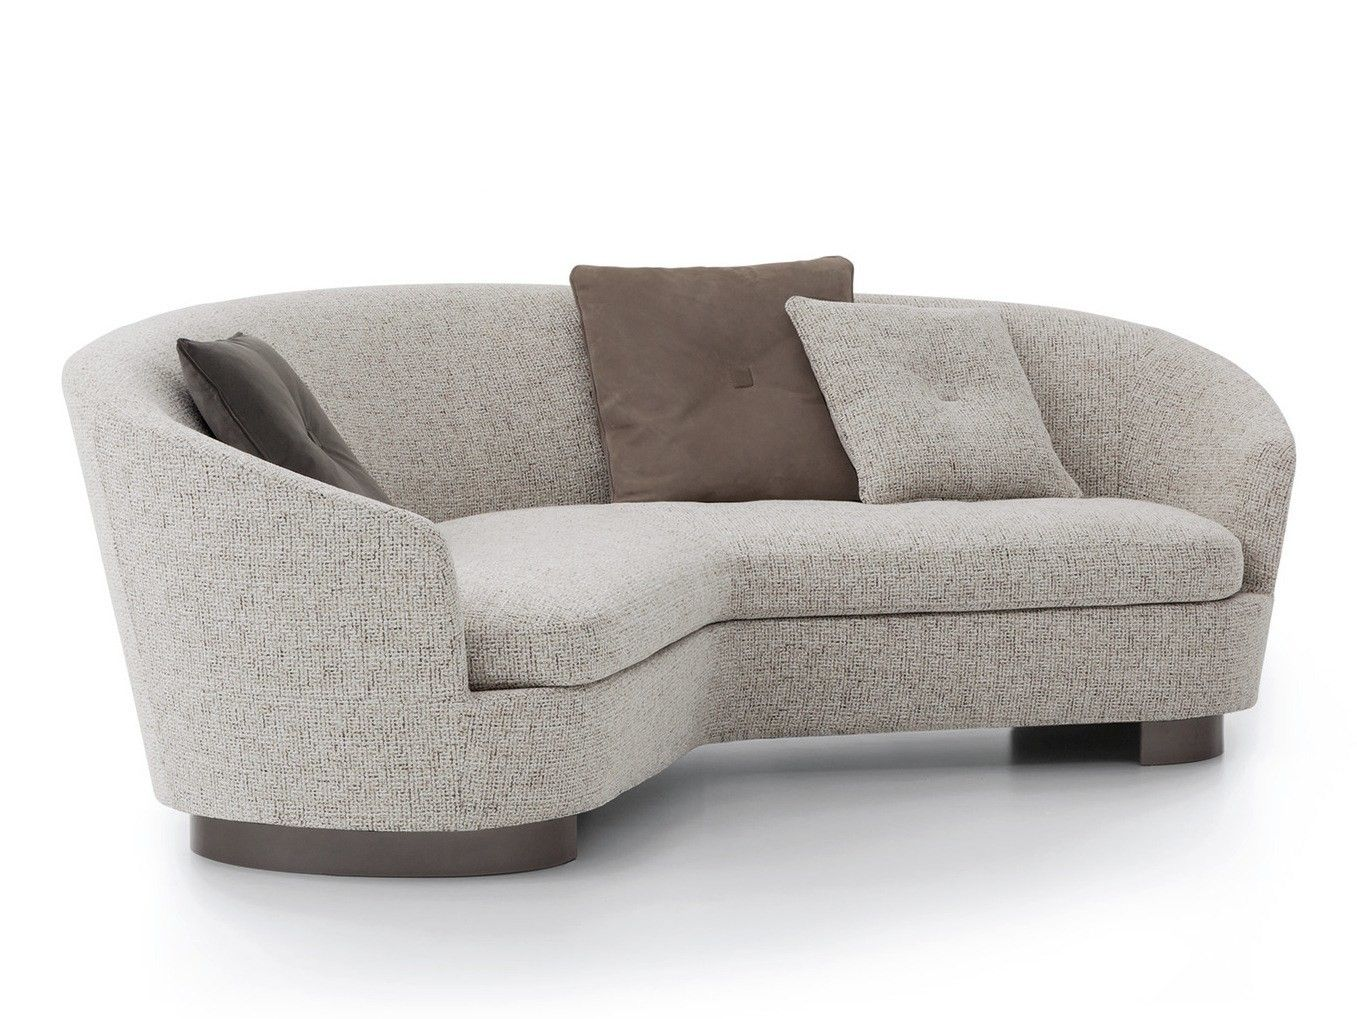 Curved Sofa Jacques Curved Sofa By Minotti Curved Sofa Curved